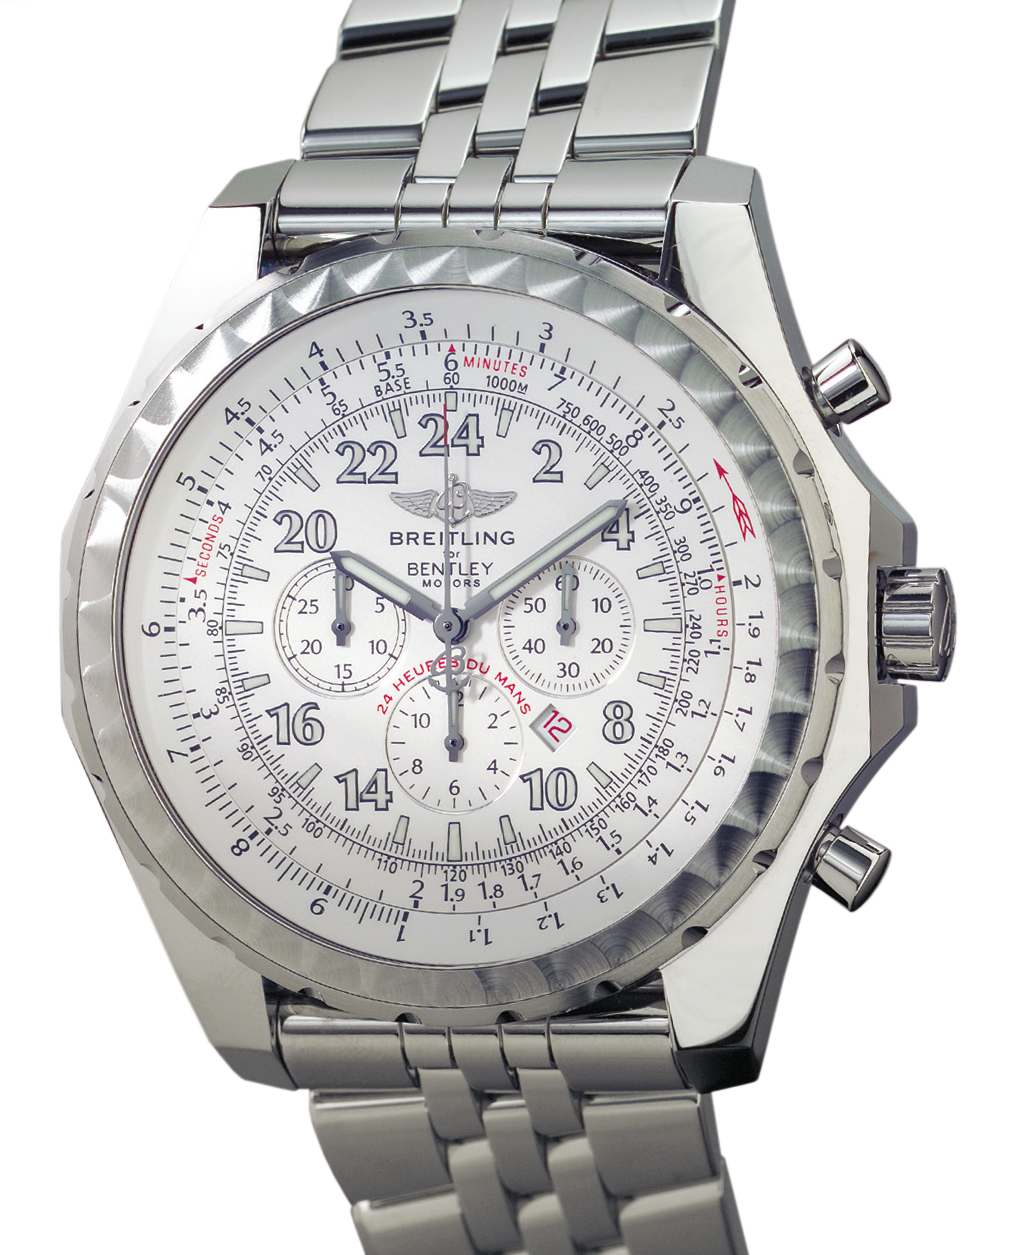 Breitling Bentley Le Mans Watch, Pictures, Reviews, Watch